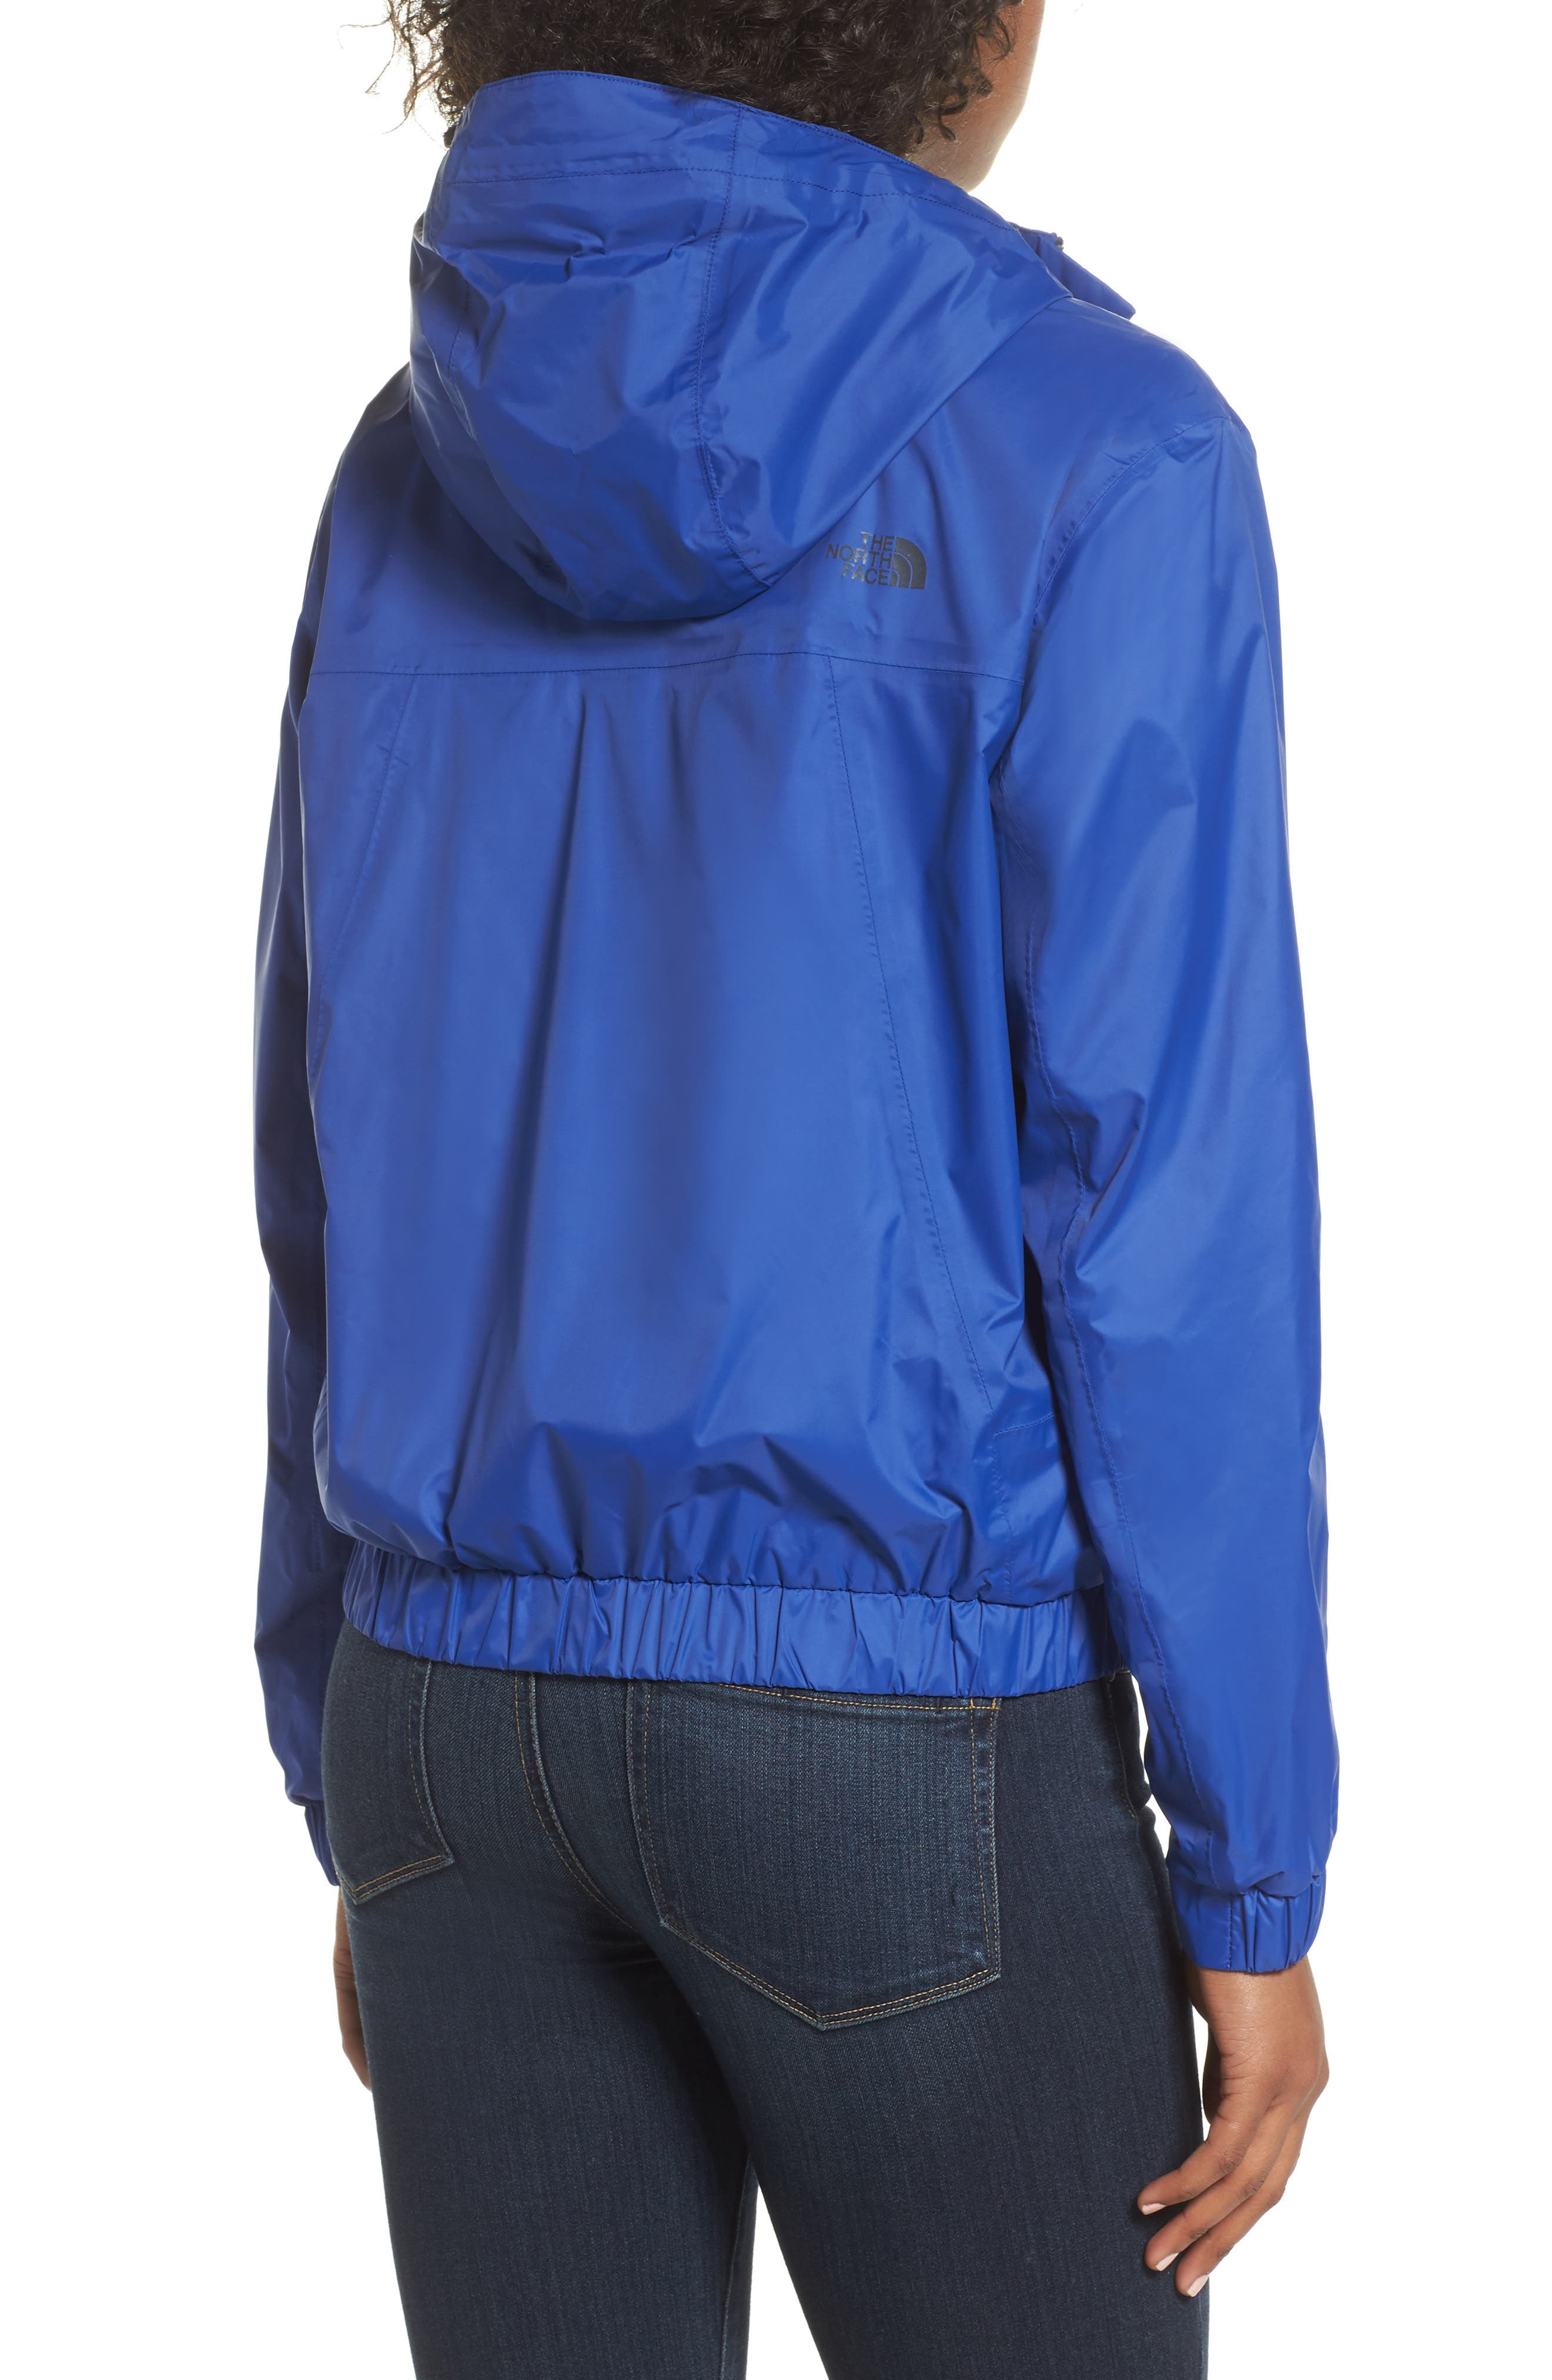 Precita Rain Jacket,                             Alternate thumbnail 2, color,                             Sodalite Blue